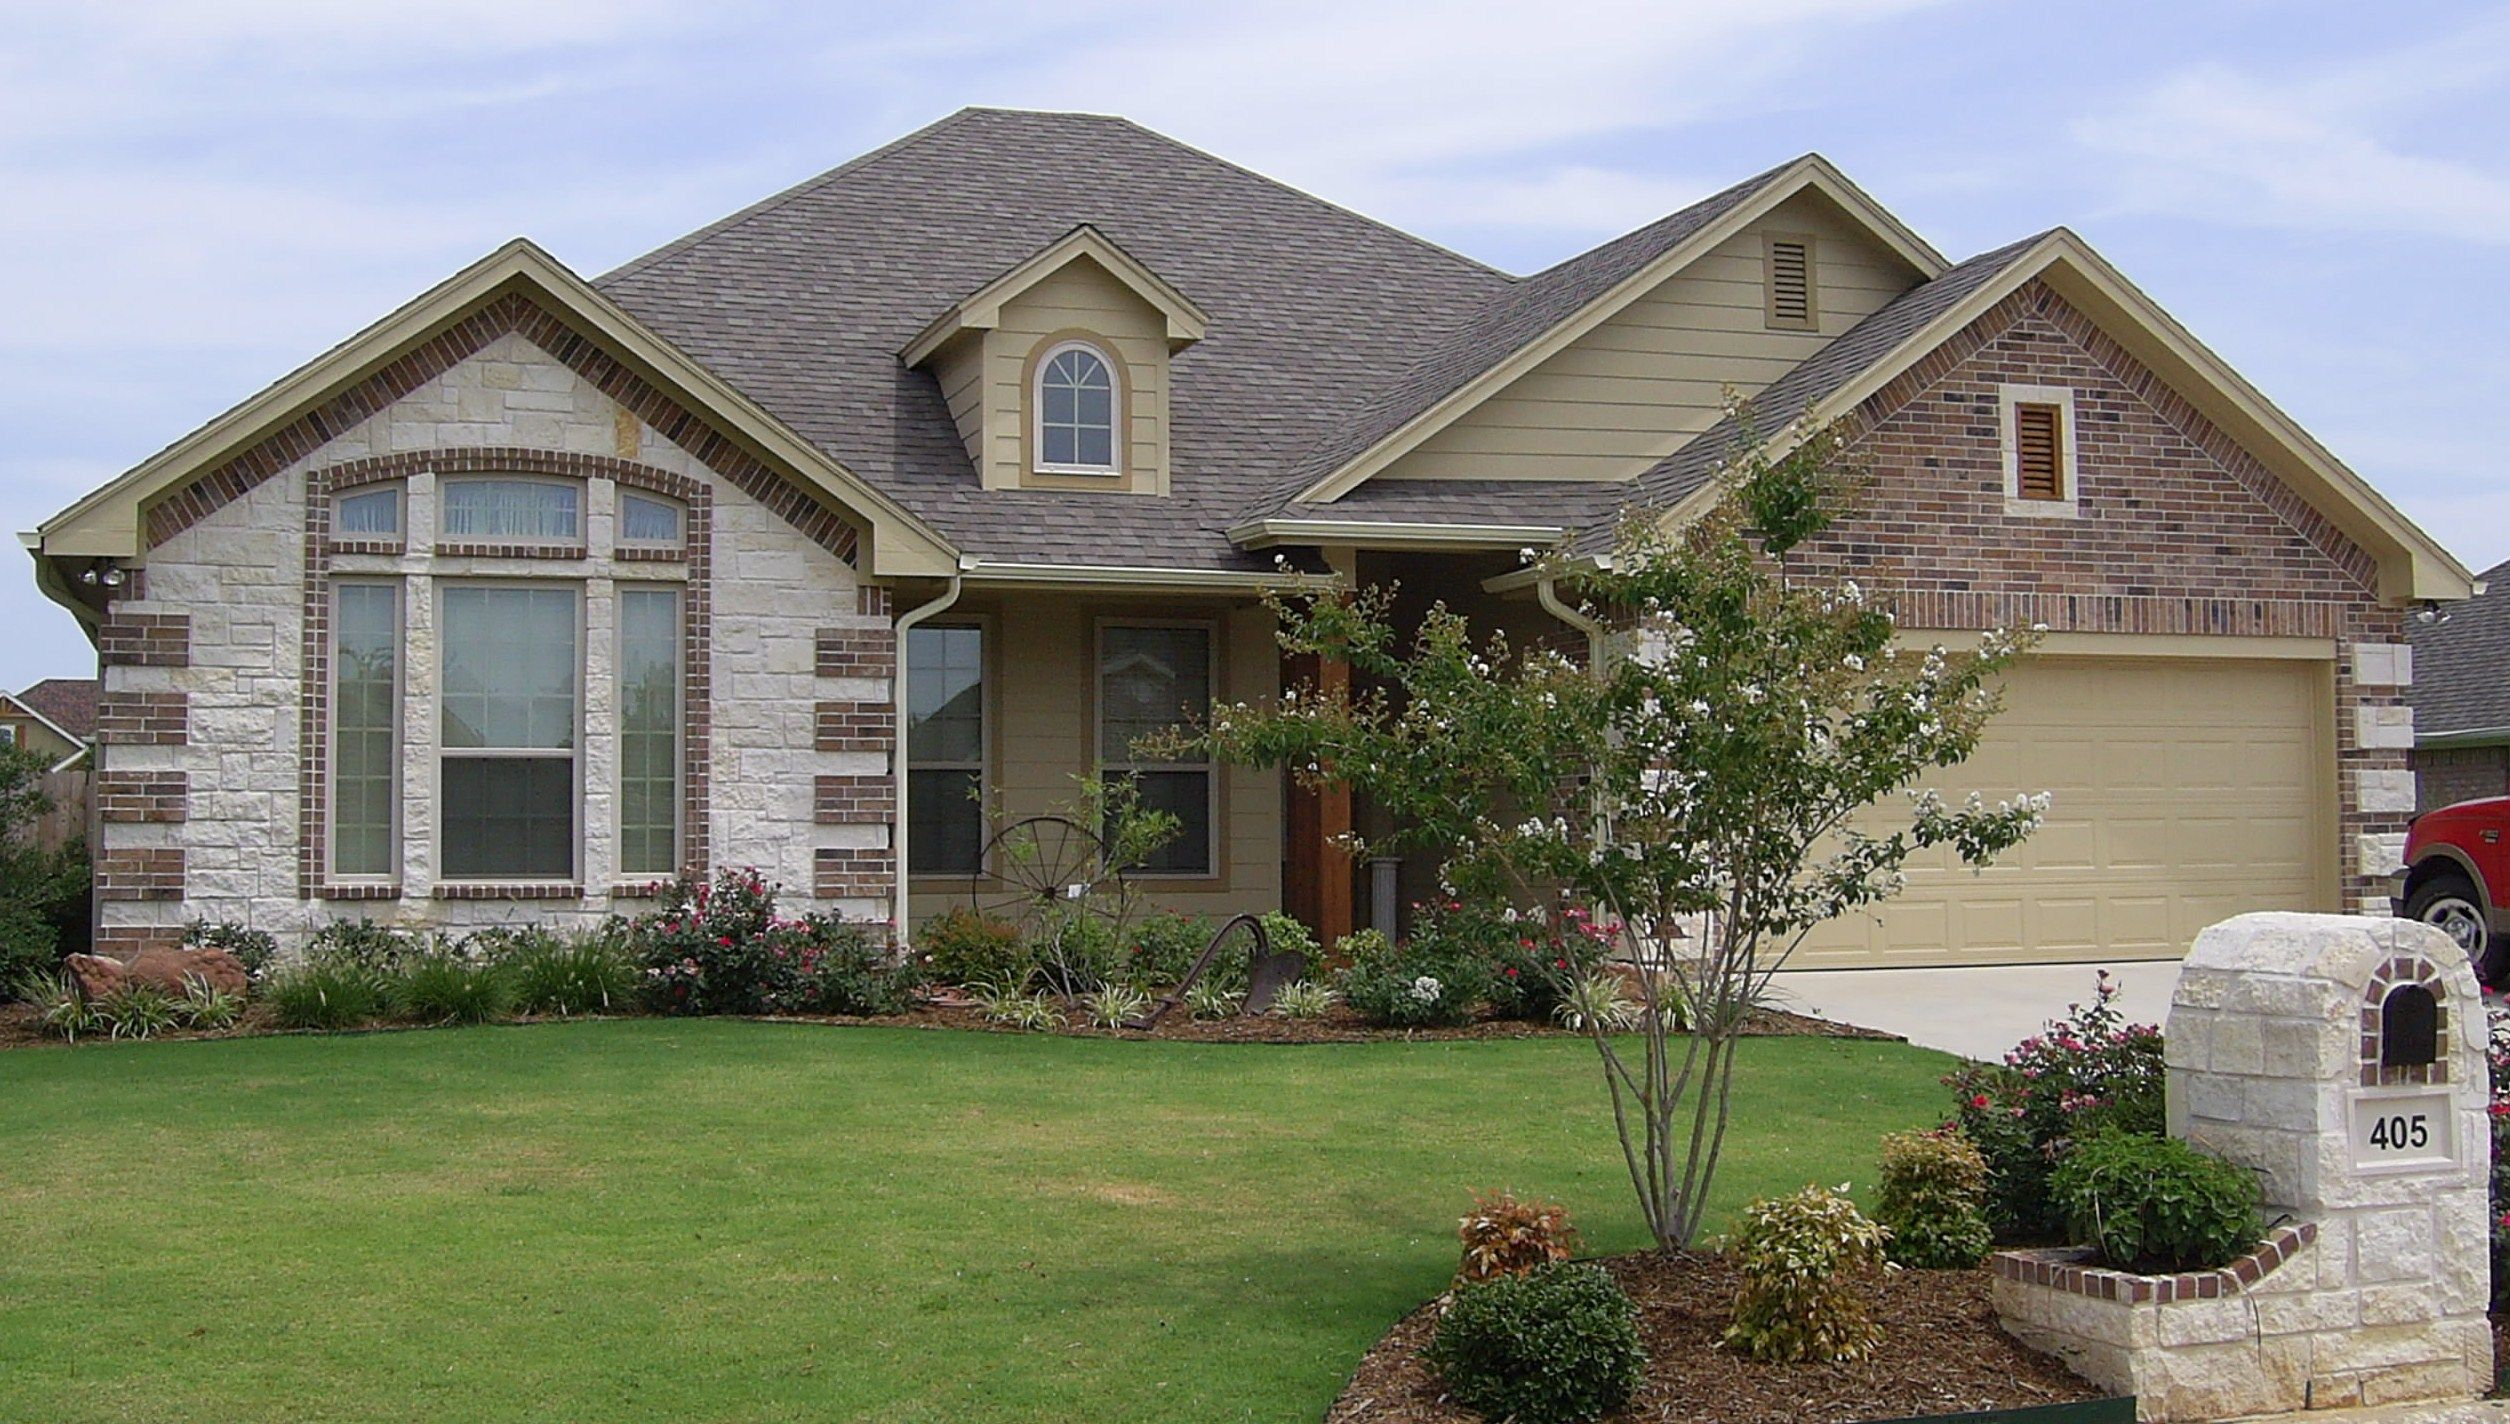 Genial Brick Stone Exteriors Homes Pictures